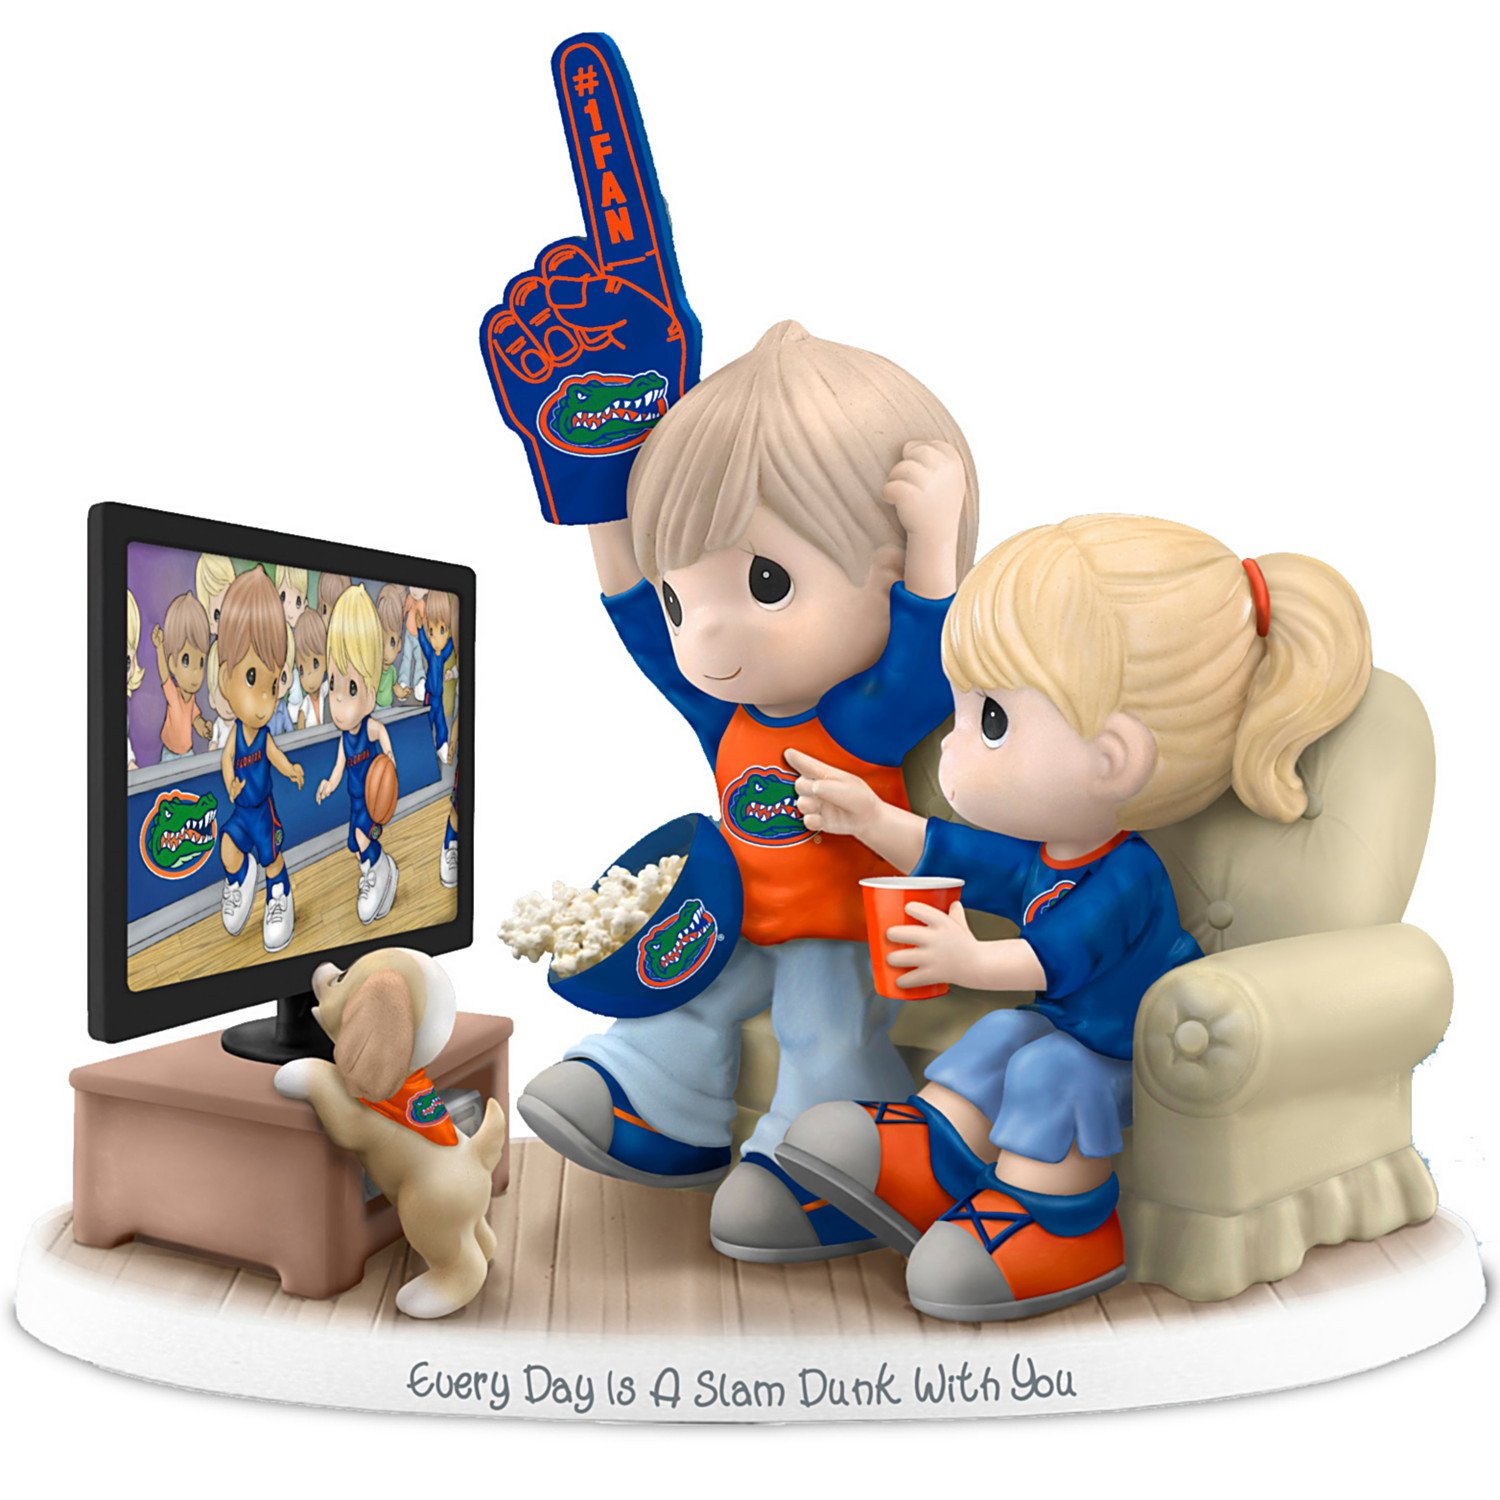 Figurine: Precious Moments Every Day Is A Slam Dunk With You Florida Gators Figurine by The Hamilton Collection